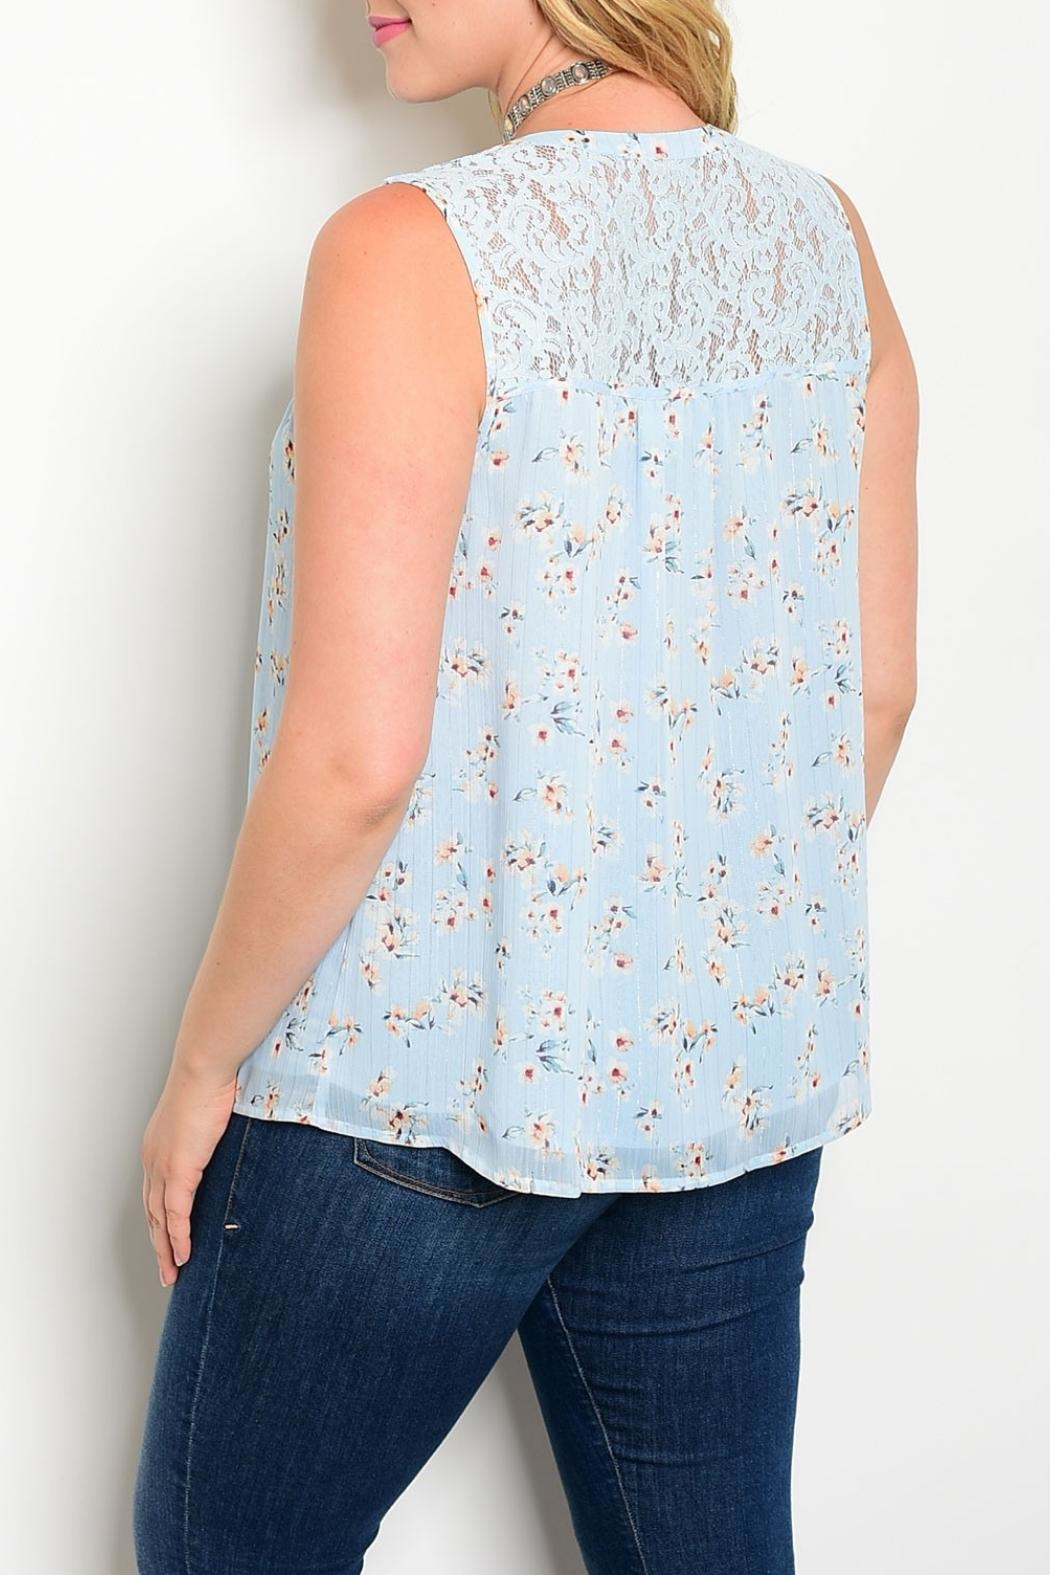 perch Light Blue Top - Front Full Image